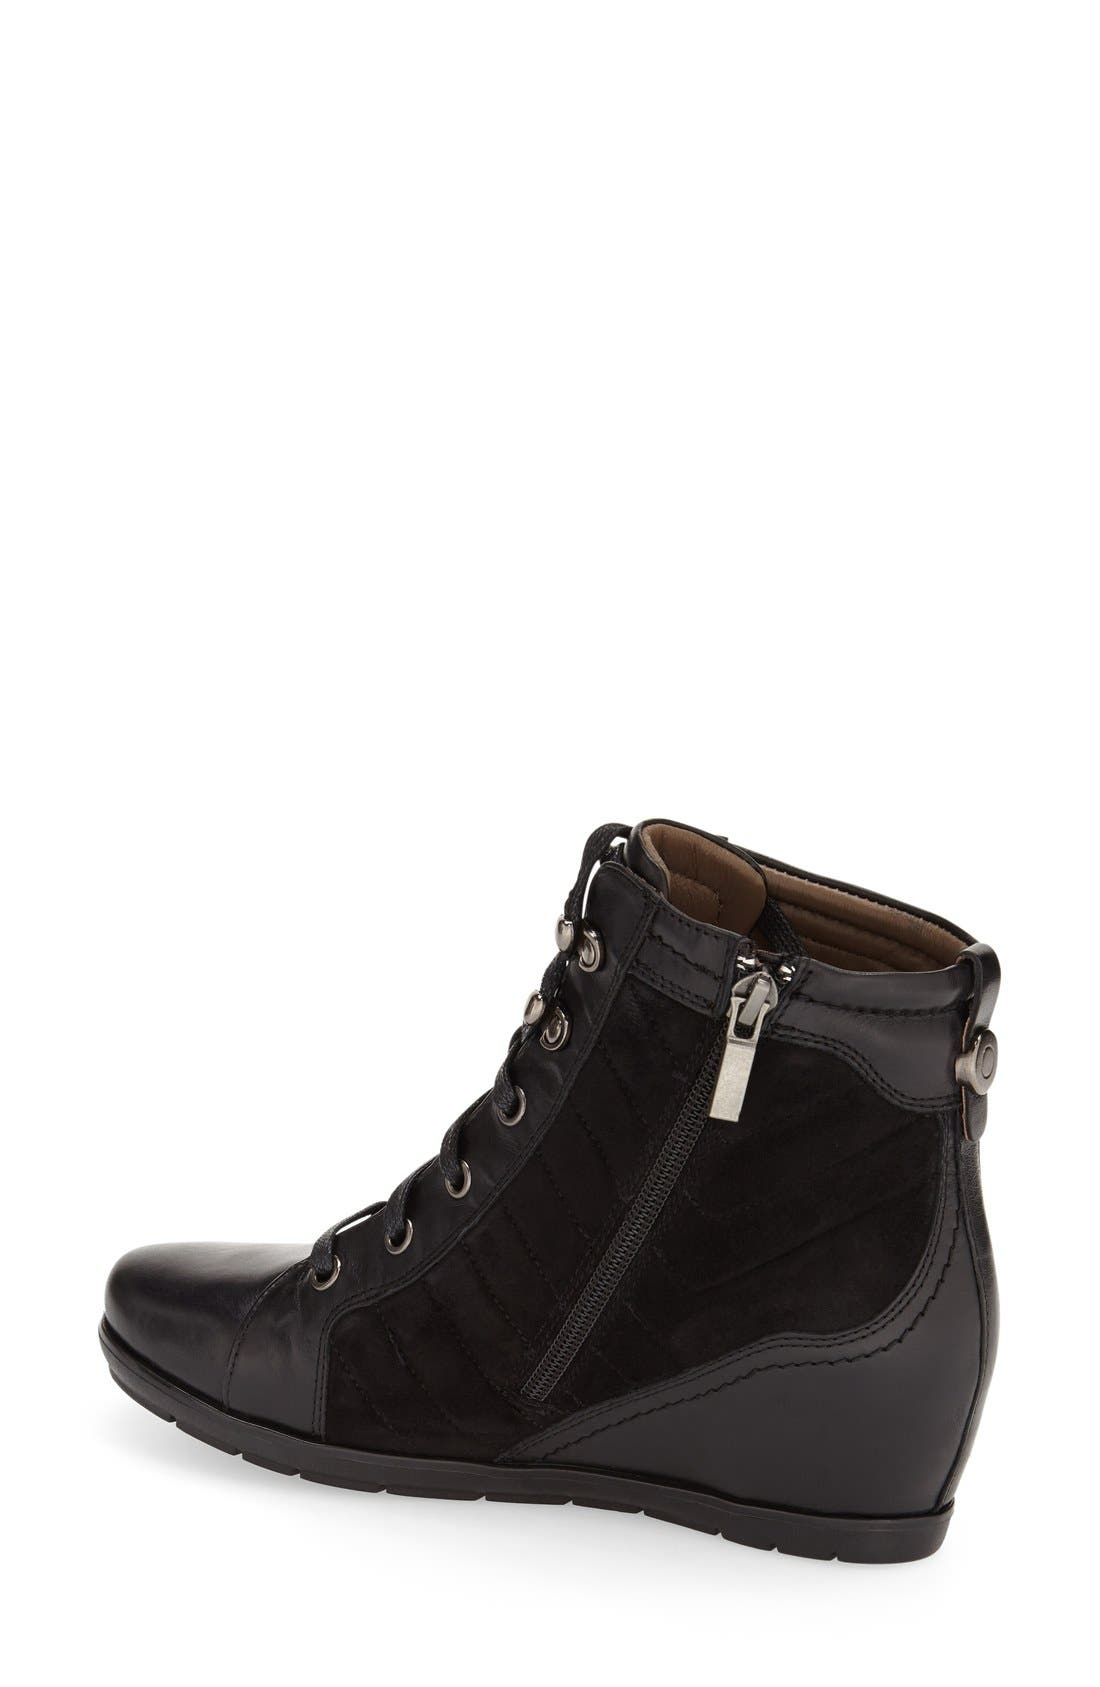 Alternate Image 2  - Earthies® 'Limburg' Wedge Bootie (Women)